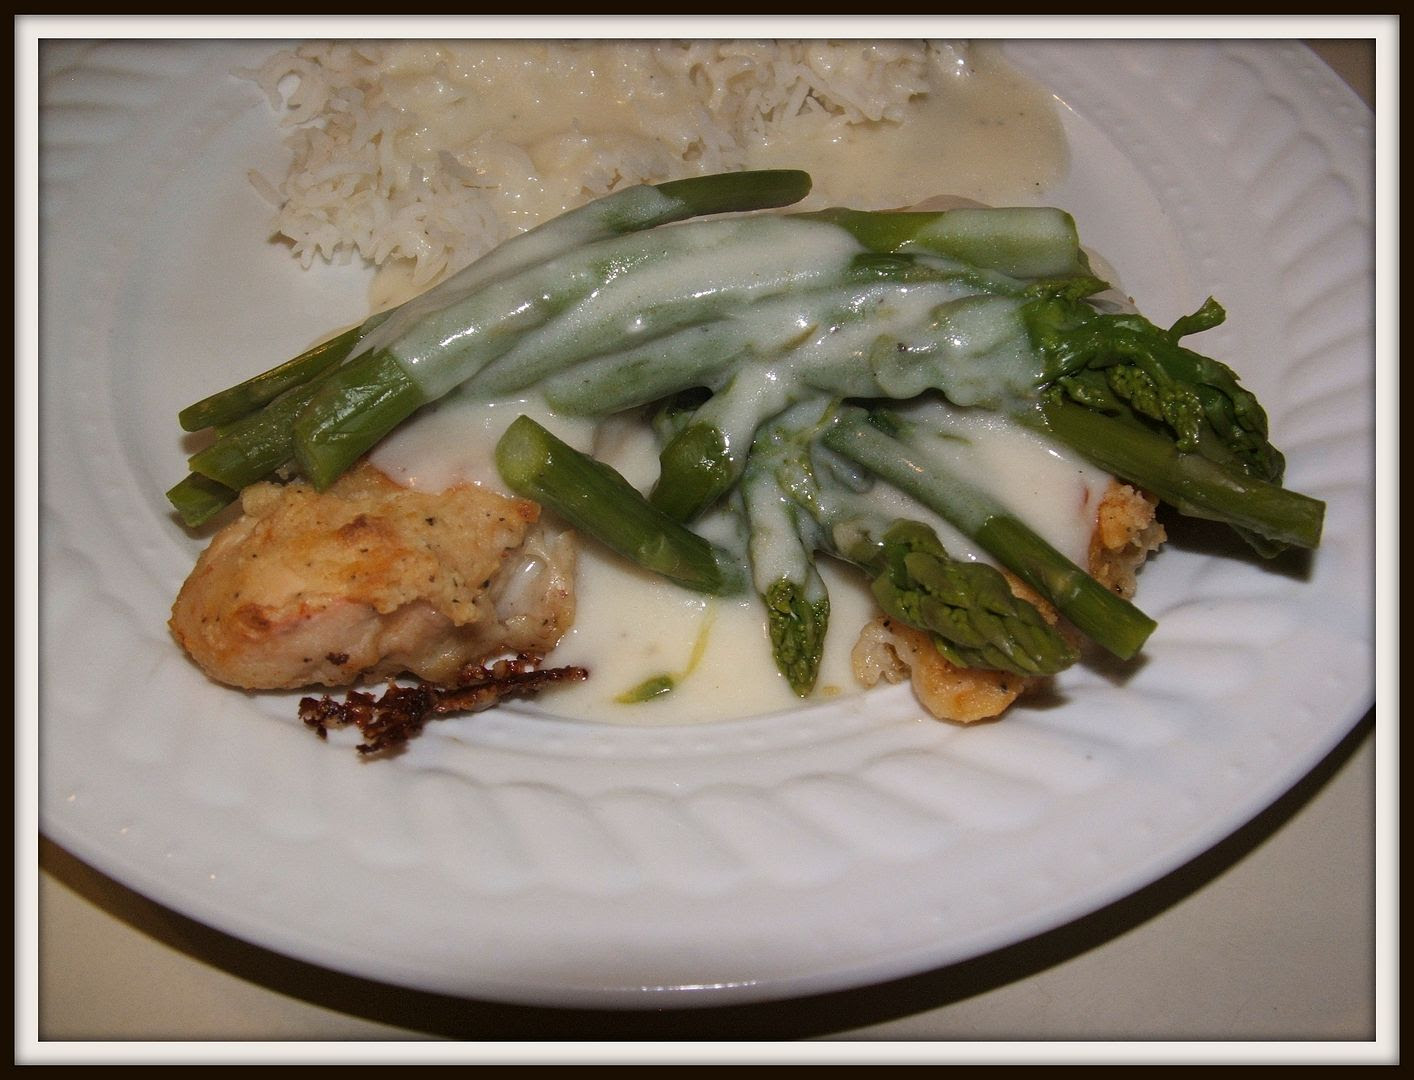 Lemon Asparagus Chicken by Angie Ouellette-Tower for godsgrowinggarden.com photo 010_zps24a62454.jpg